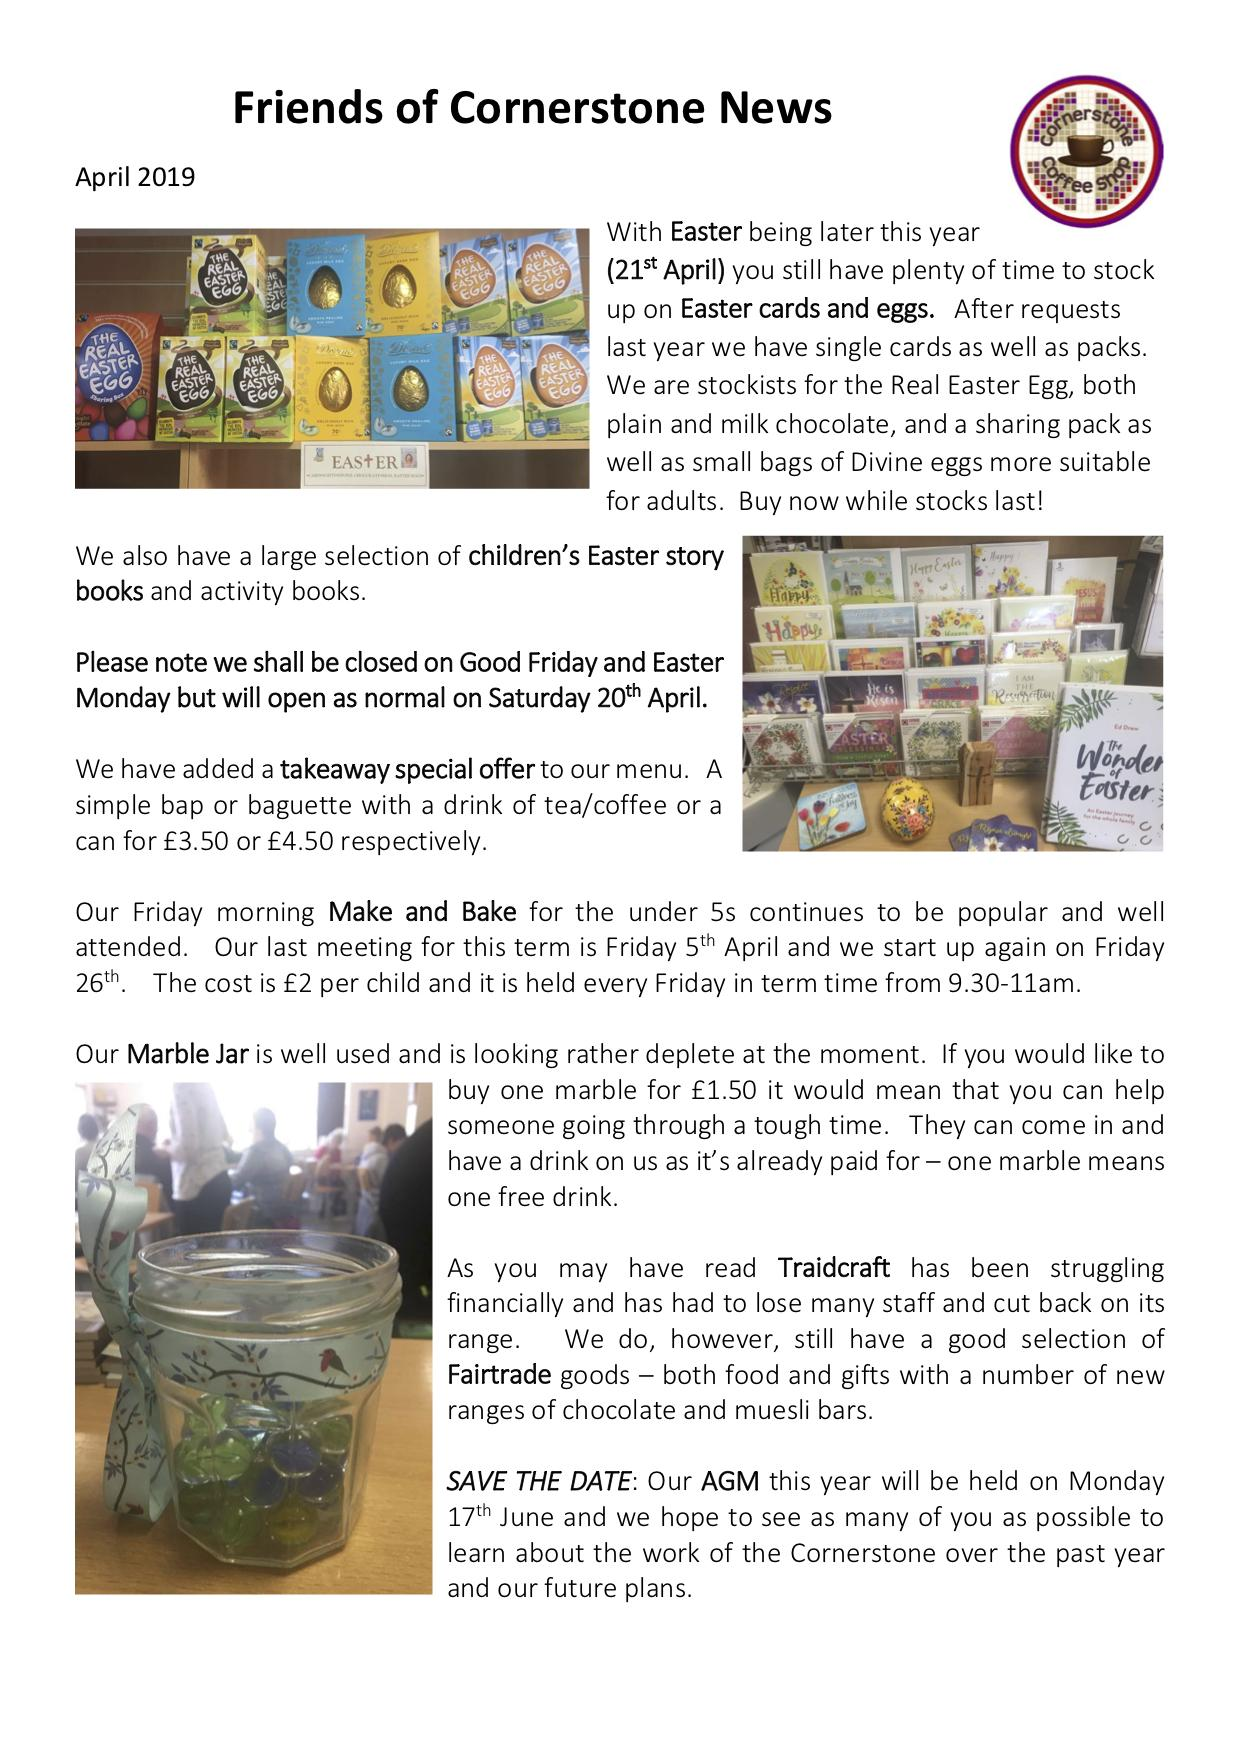 Friends Newsletter April 2019